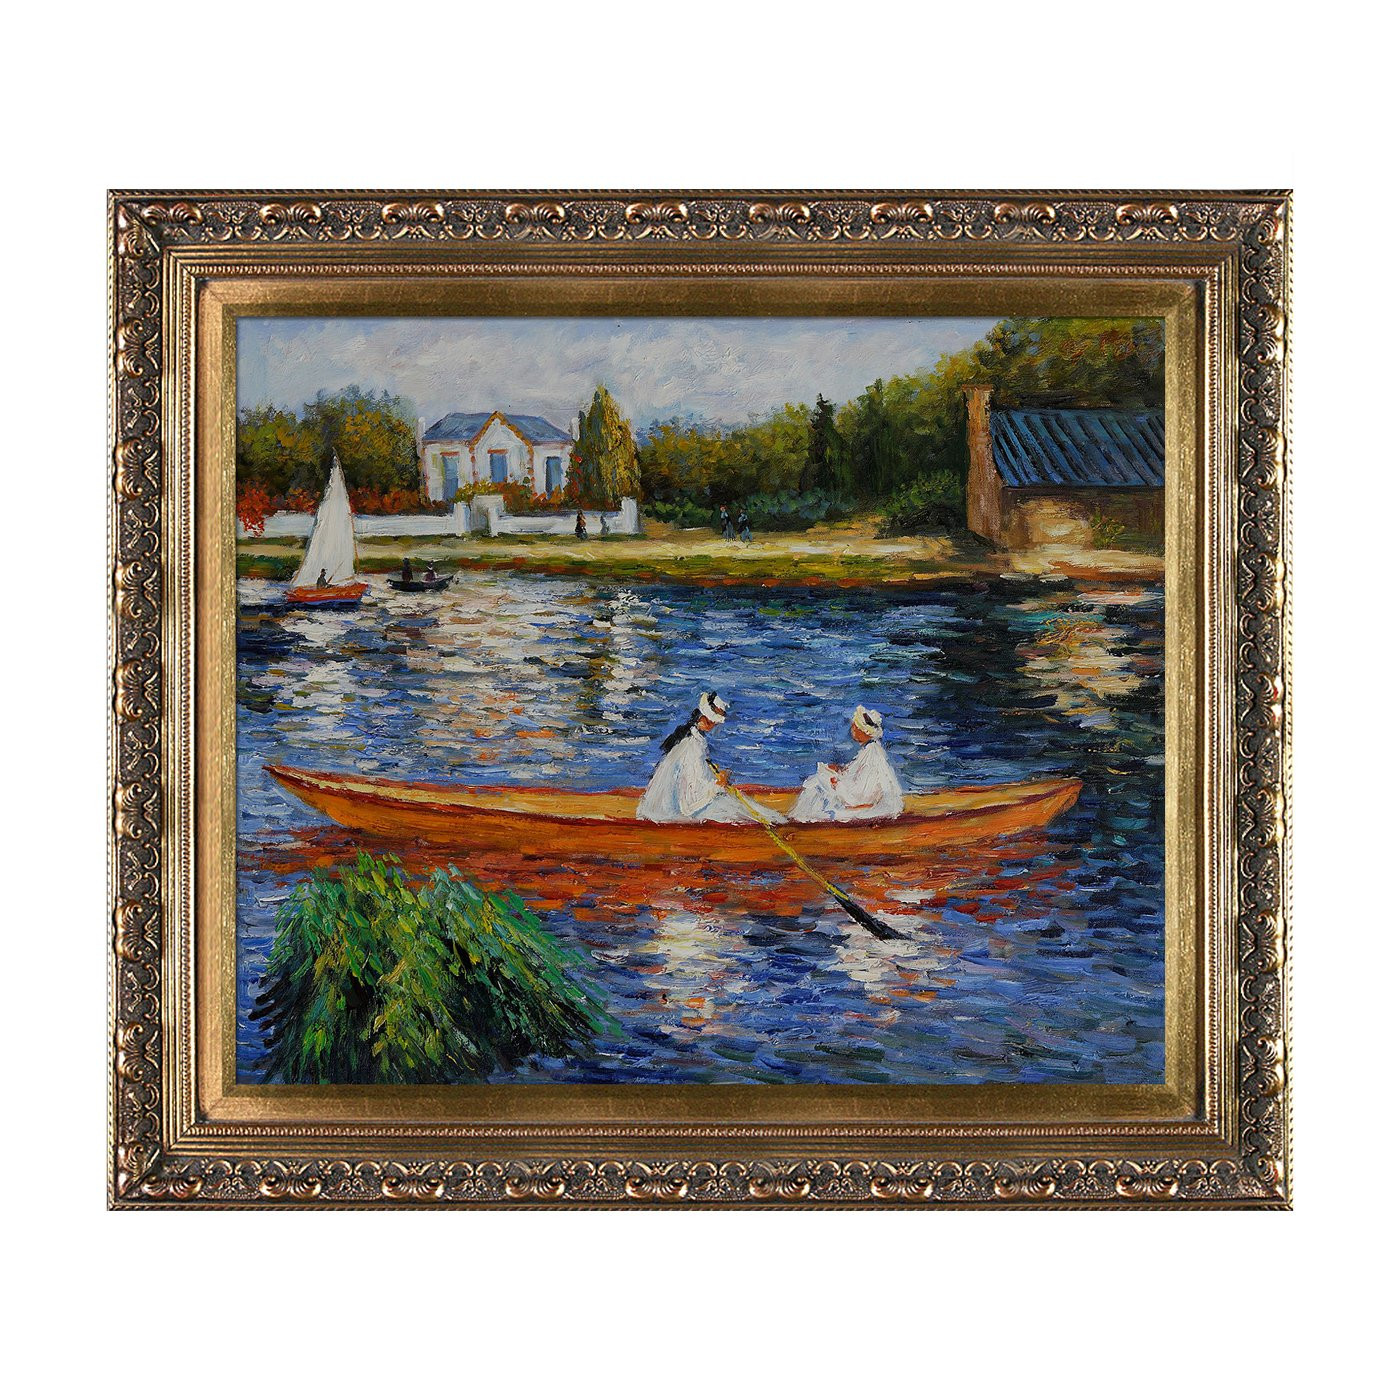 Best ideas about Overstock Wall Art . Save or Pin Overstock Art RN826 FR X24 Renoir Boating on the Now.